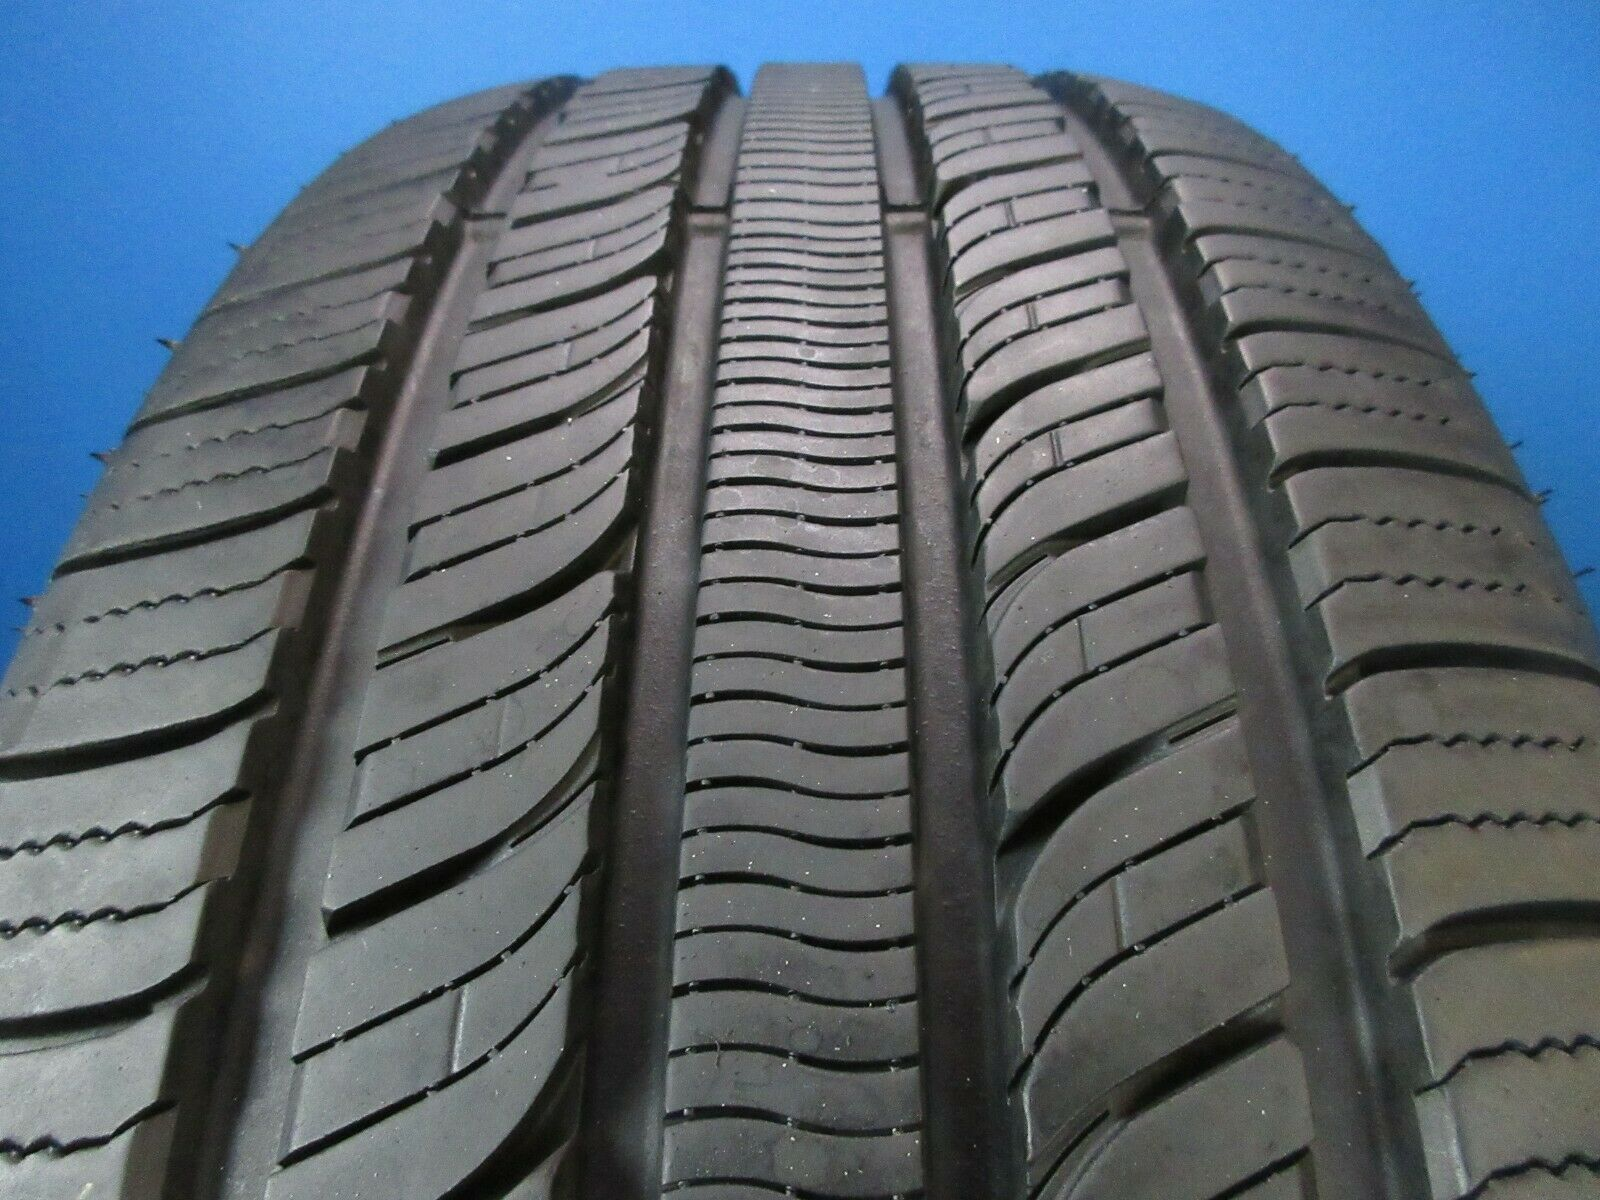 Used Falken ProTouring A/S  225 60 17  9-10/32 High Tread 1470C